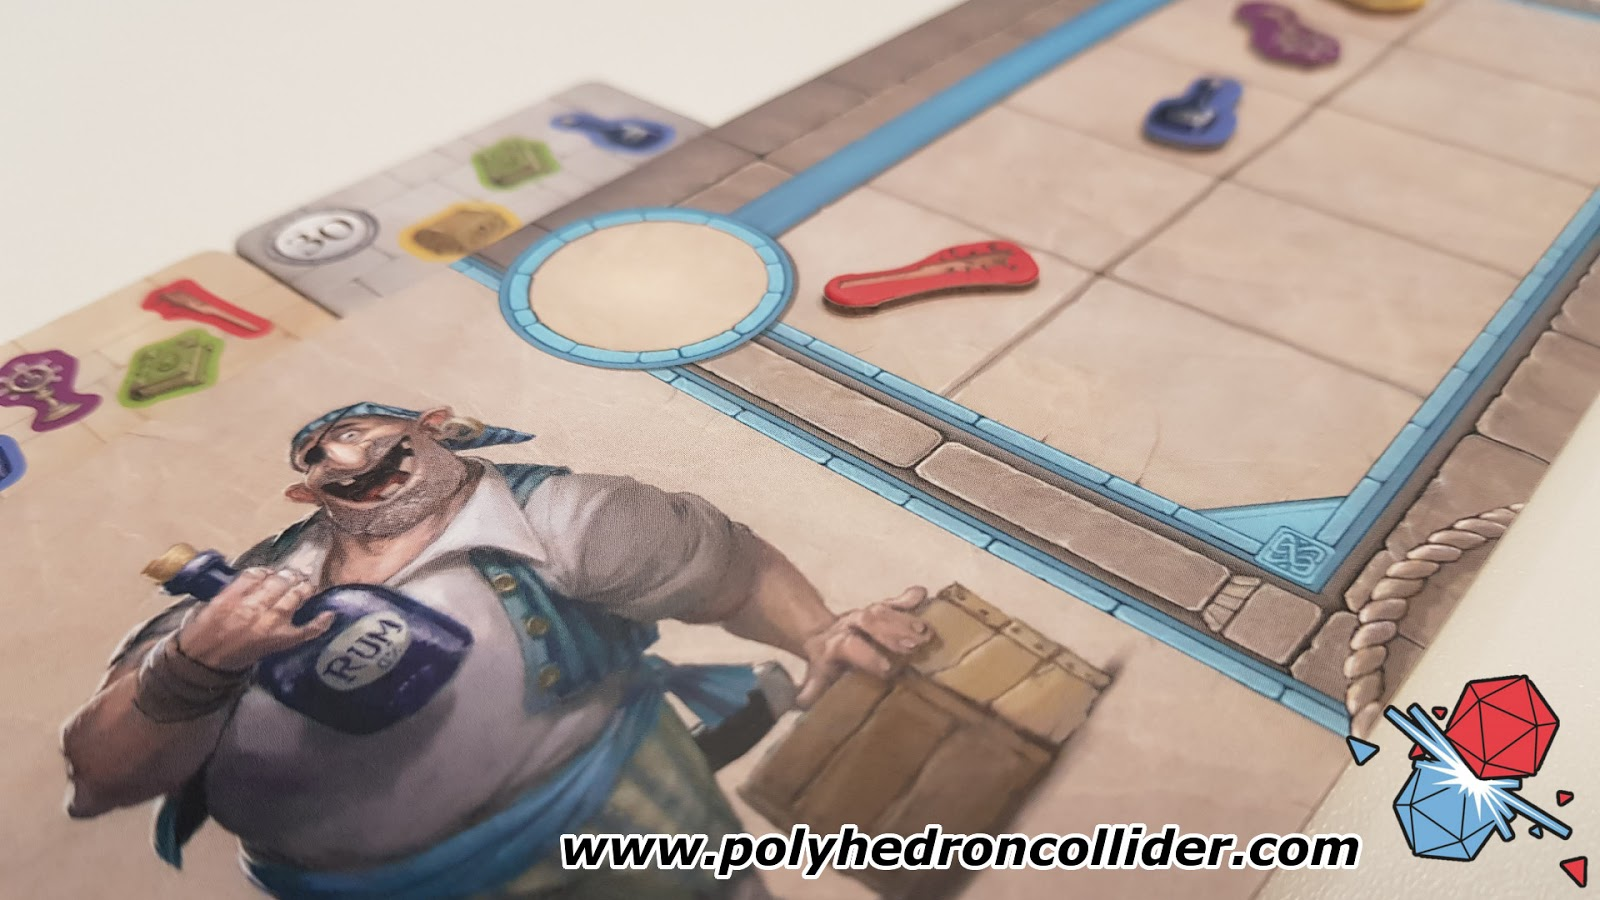 Polyhedron Collider Slyville Board Game Review - Player Board Close Up